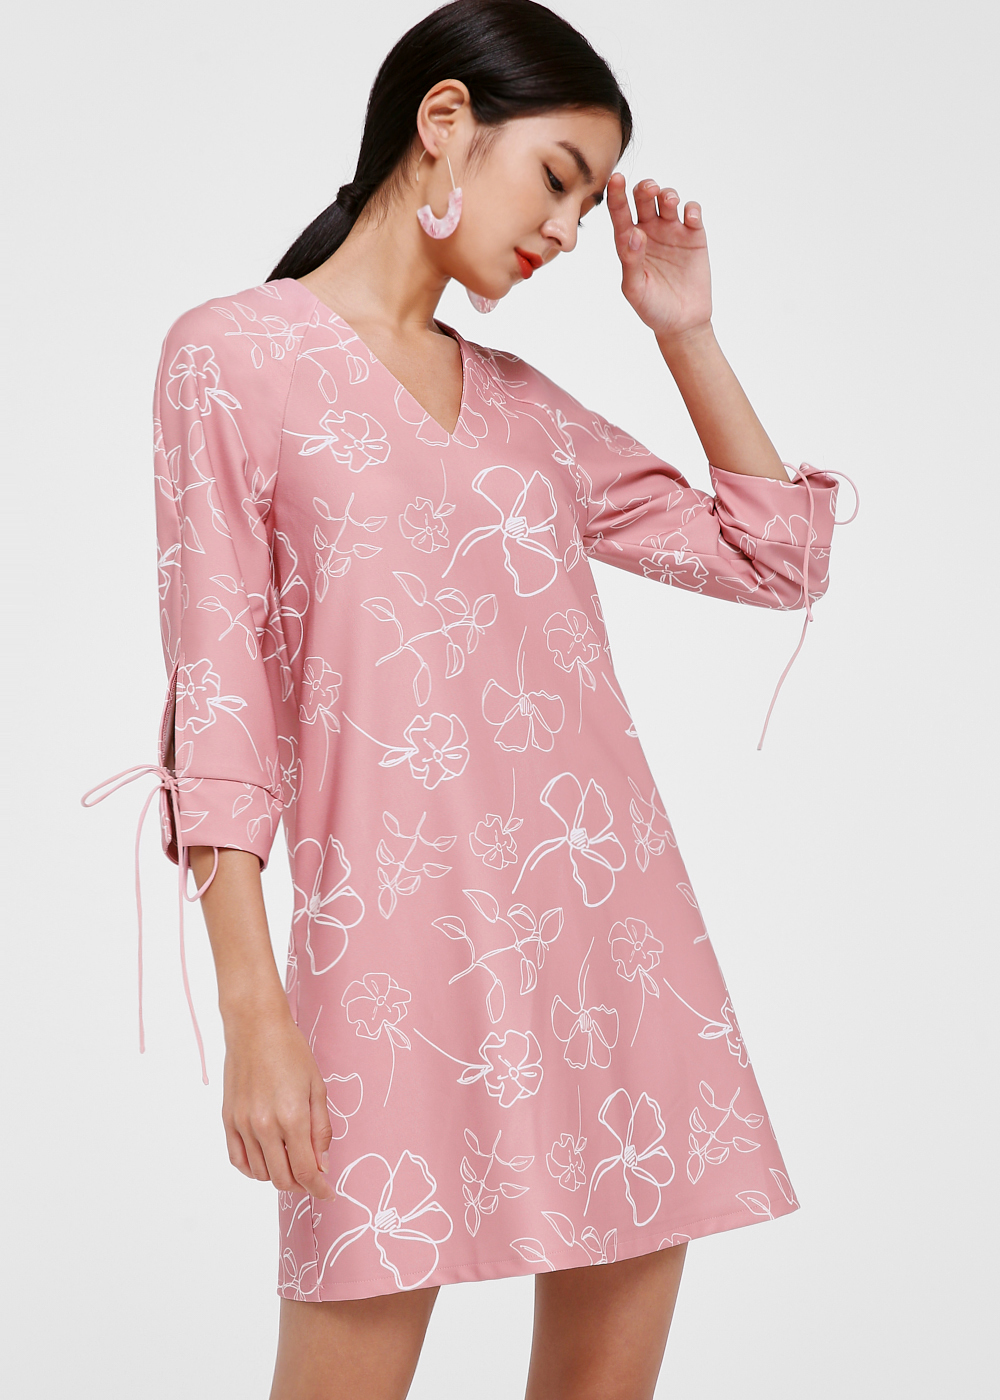 Neima Tie Sleeve Shift Dress in Spring Field